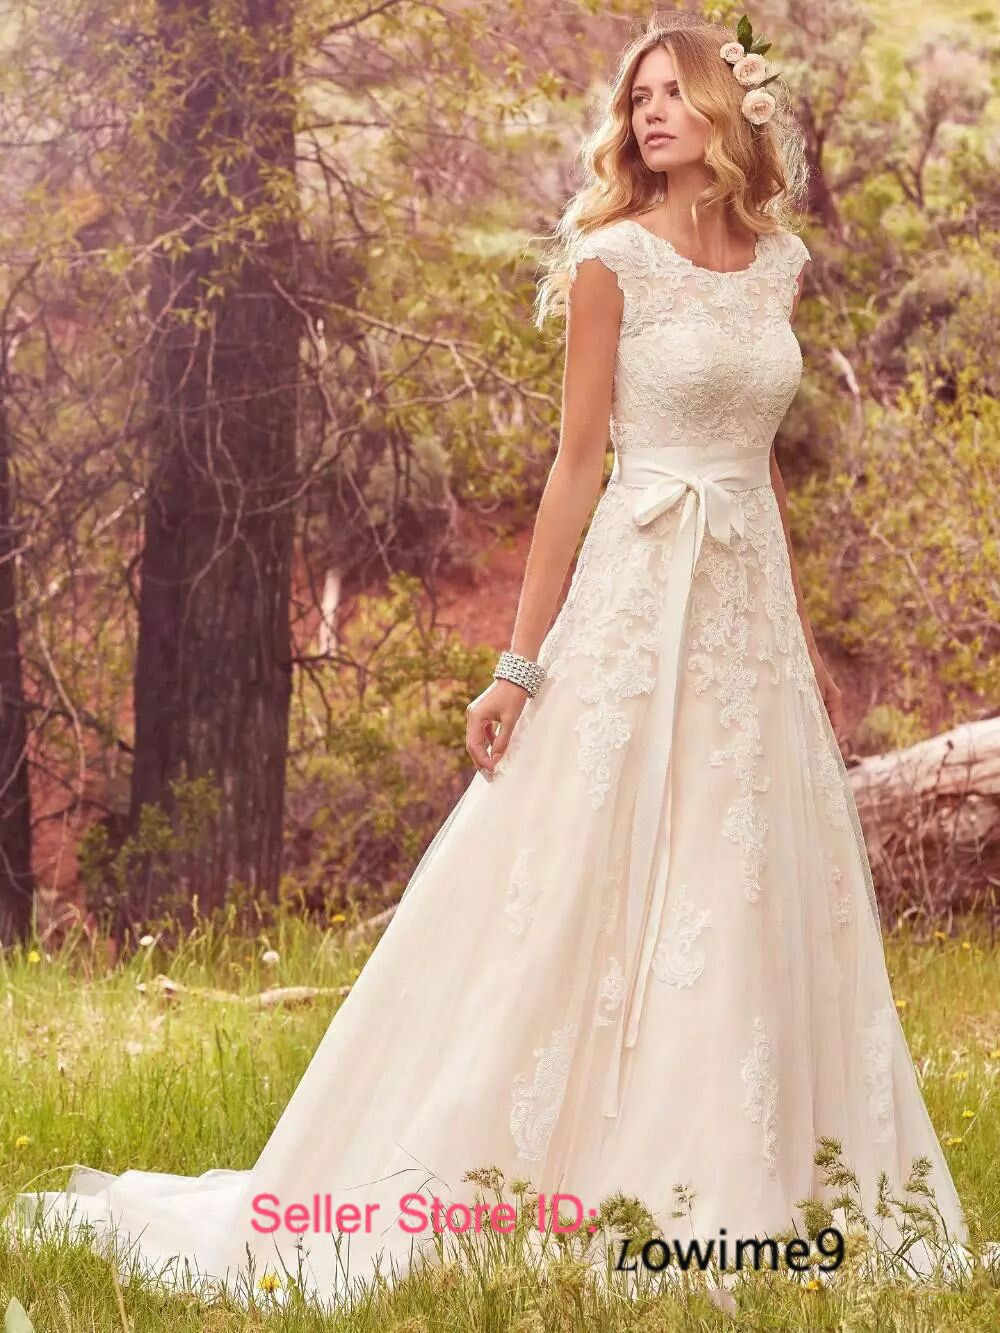 Nice country wedding cap sleeve lace wedding dress button back bride